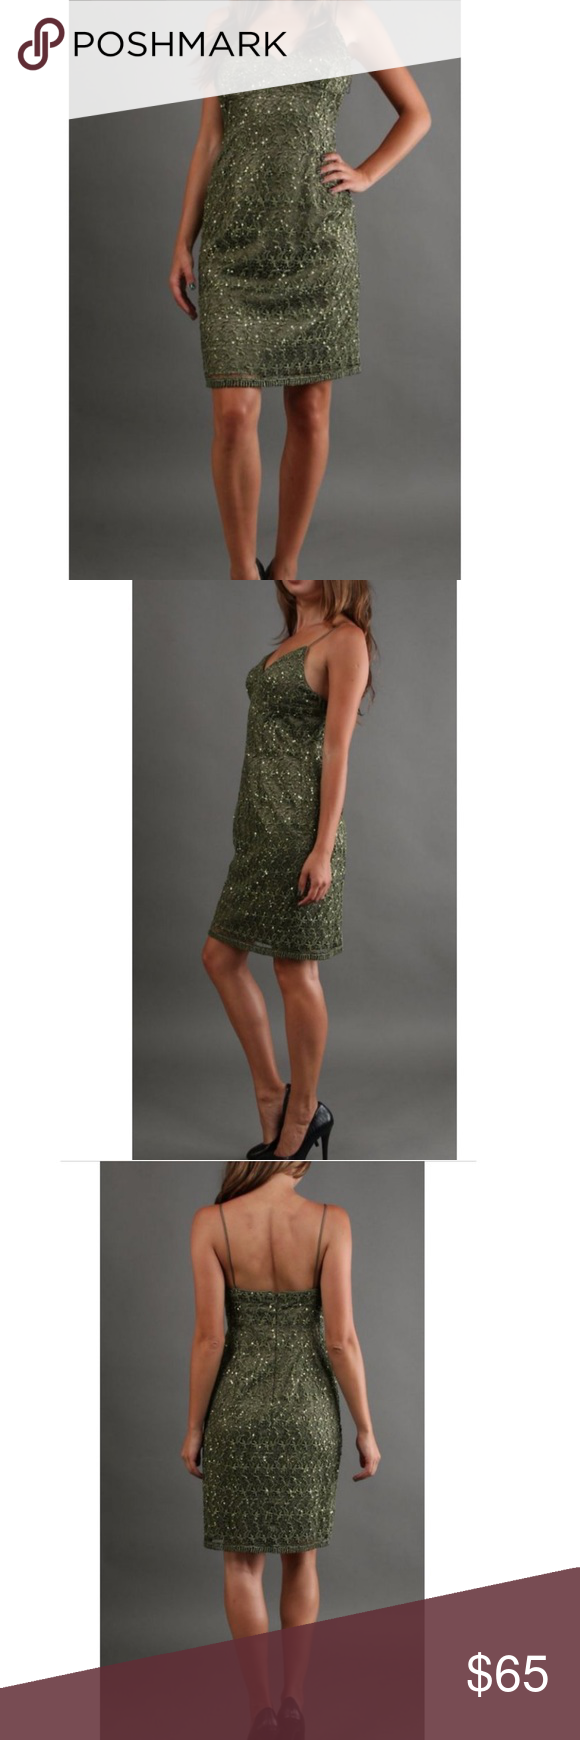 f37cb60f Adrianna Papell - Olive green sequin dress Brand new form fitting olive  green crochet lace sequin